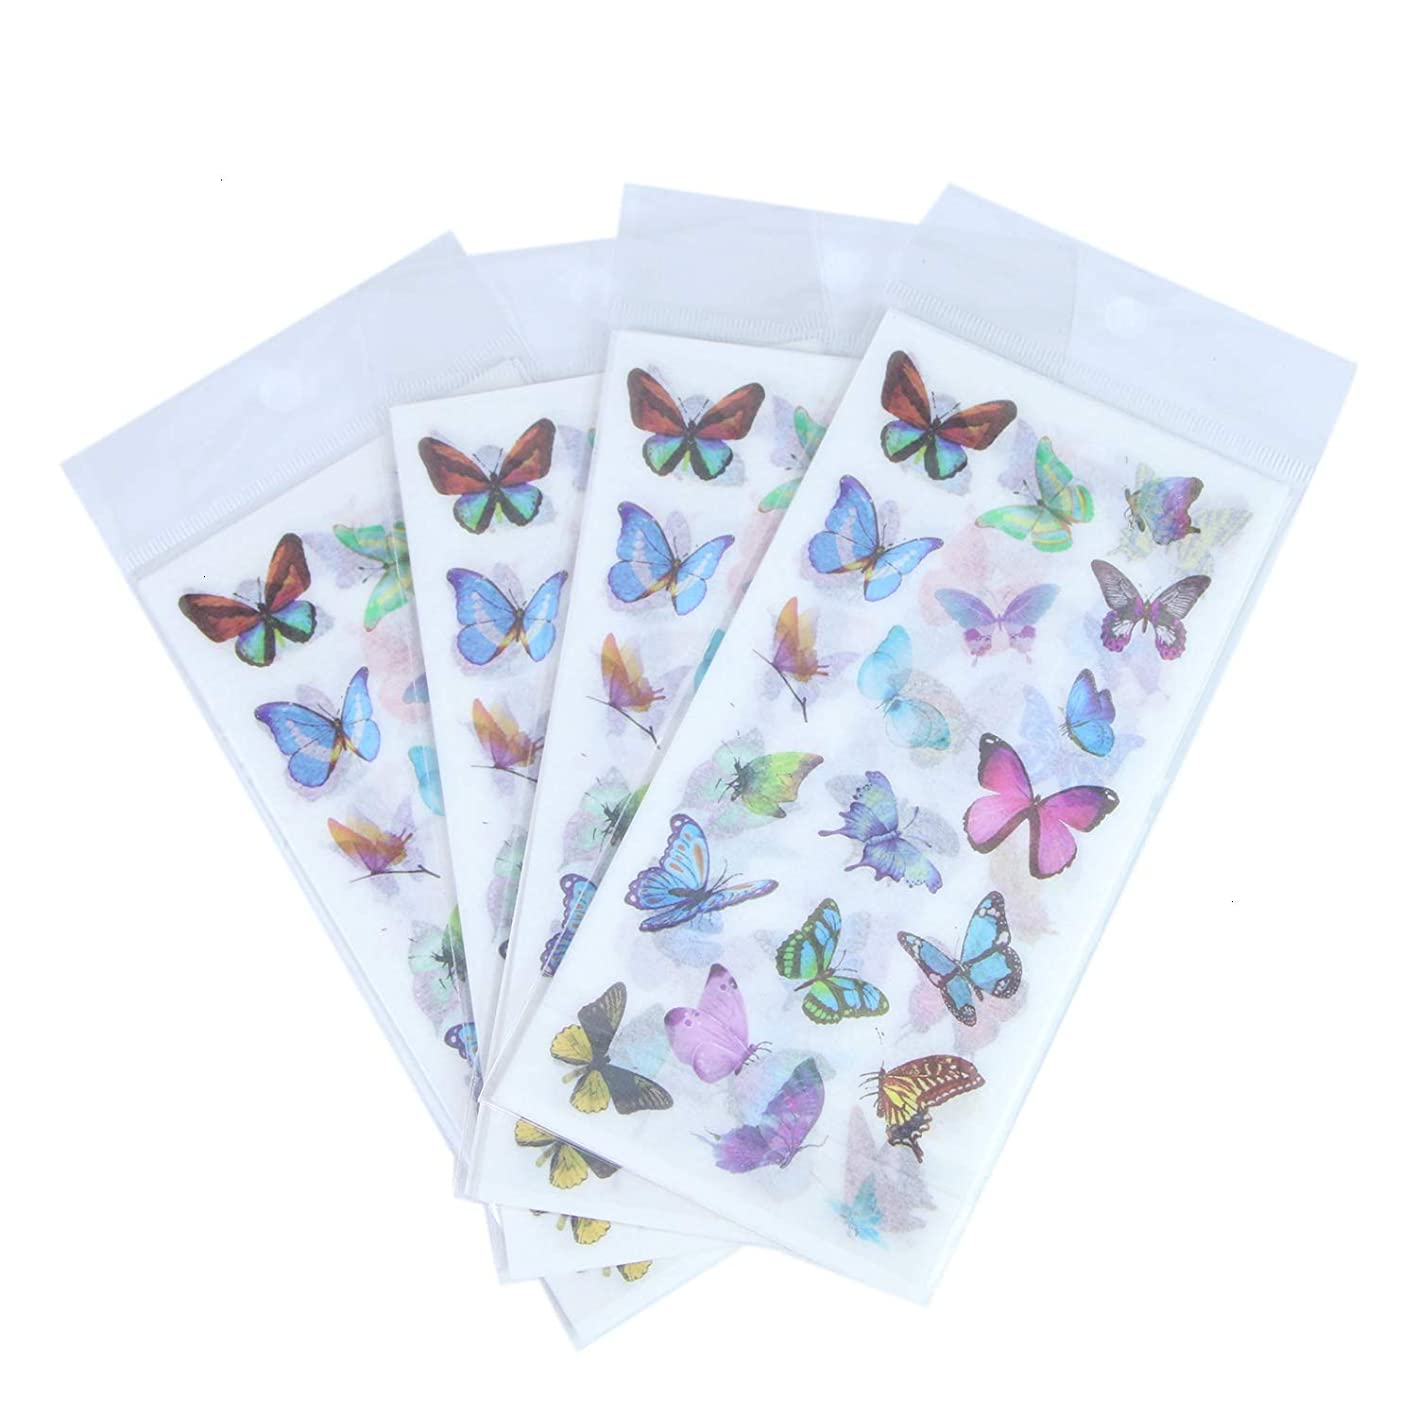 Monrocco 24 Sheet Butterfly Decorative Adhesive Sticker, Craft Scrapbooking Sticker, Washi Planner Sticker for DIY Arts and Crafts,Life Daily Planner,Bullet Journals,Scrapbooks,Calendars, Album febiejlfswl634